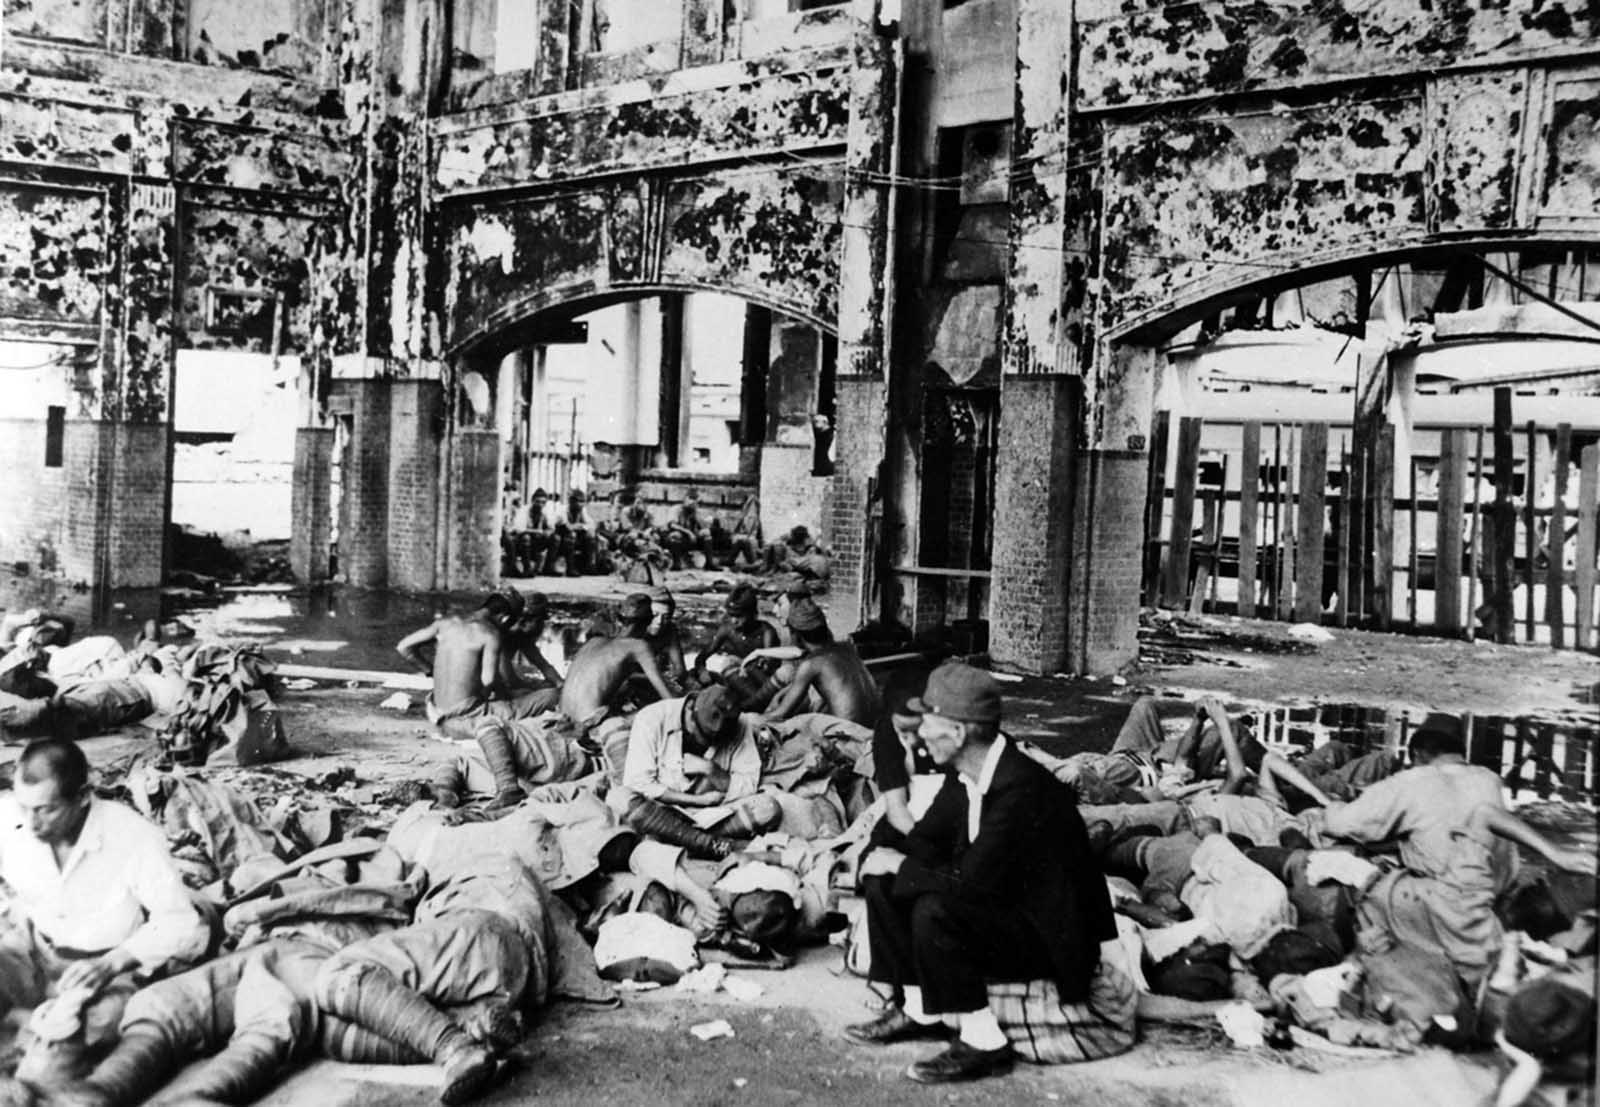 Japanese troops rest in the Hiroshima railway station after the atomic bomb explosion.